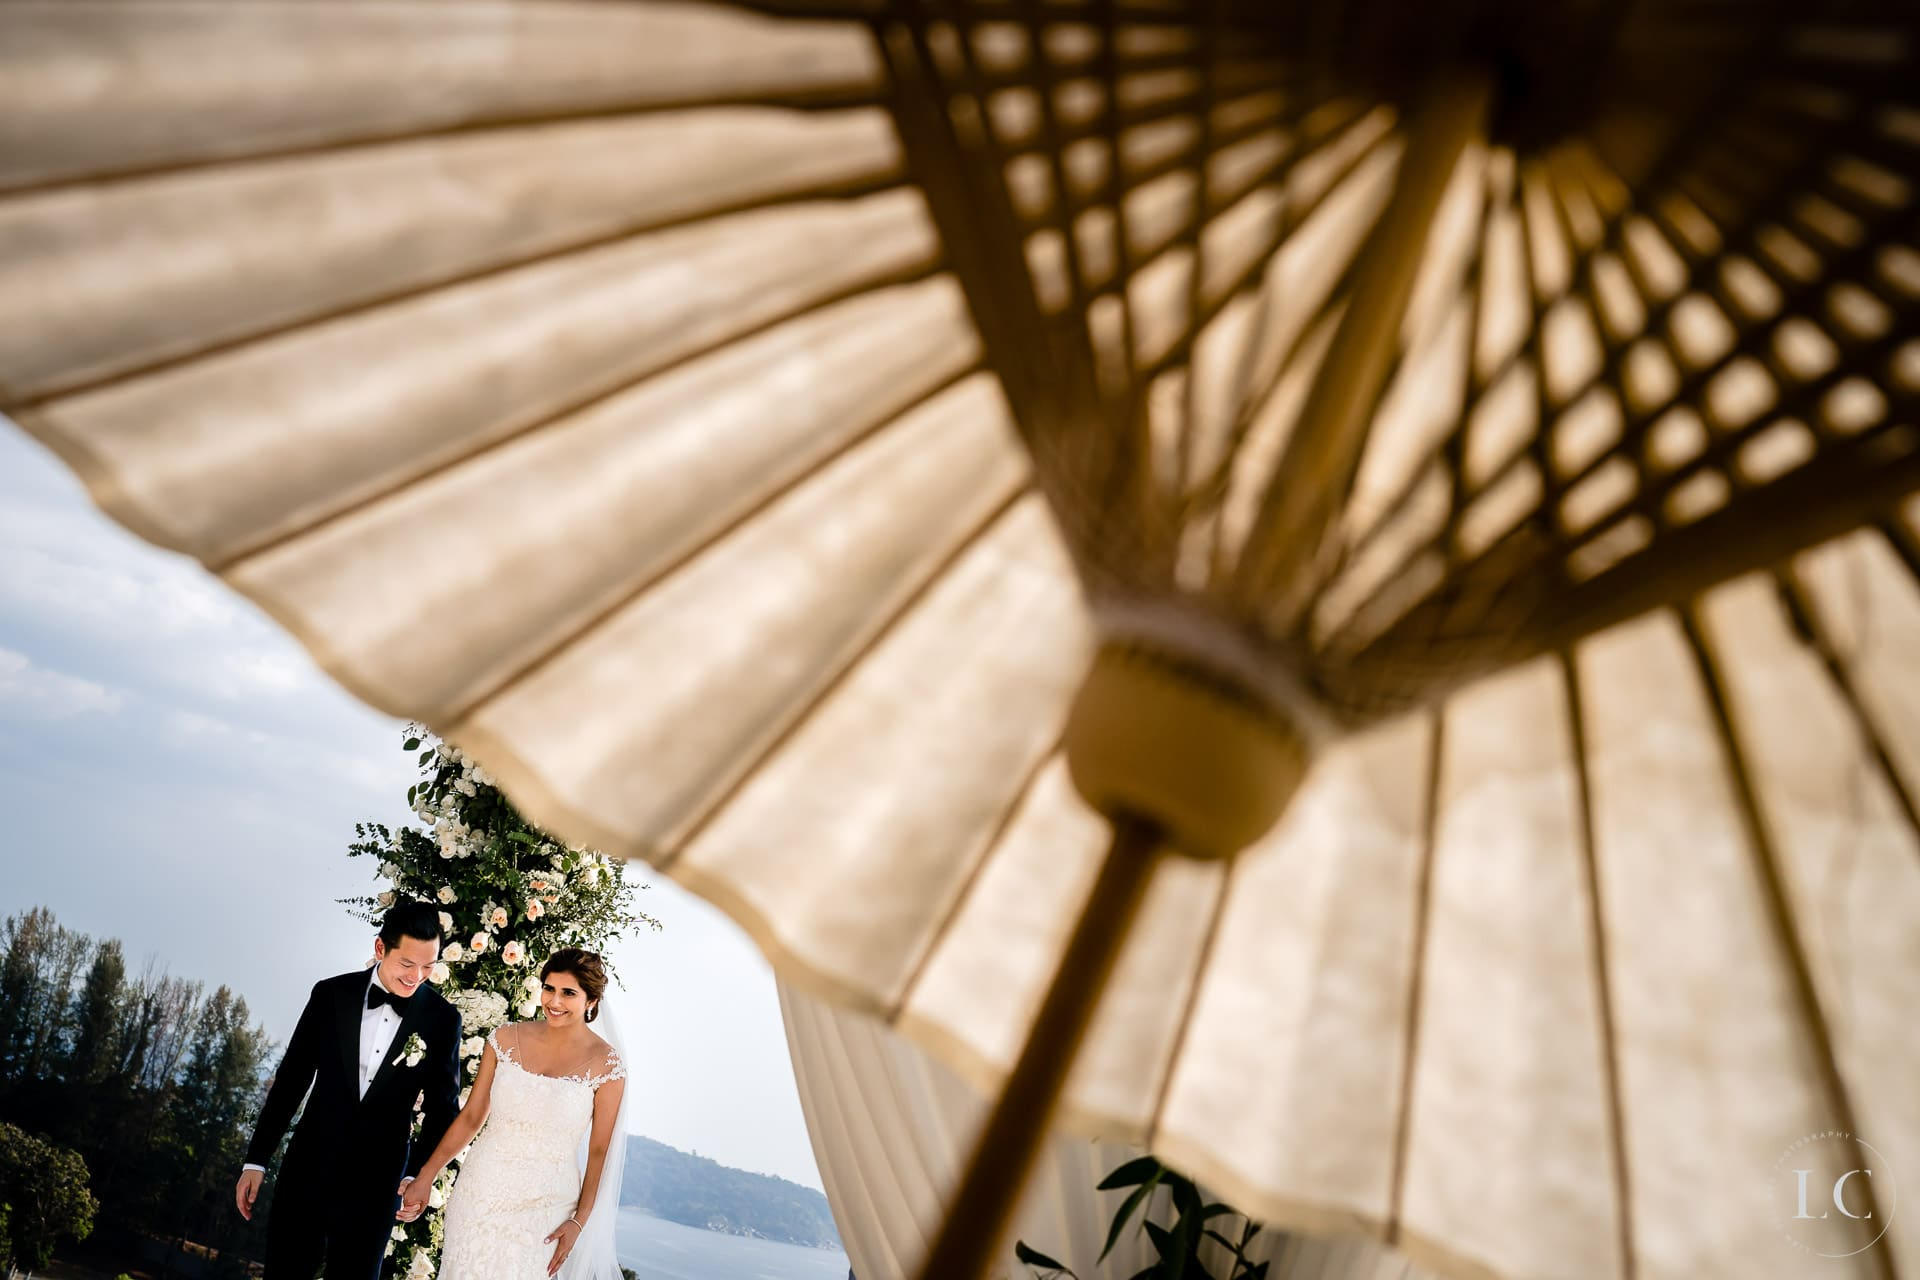 Bride under umbrella